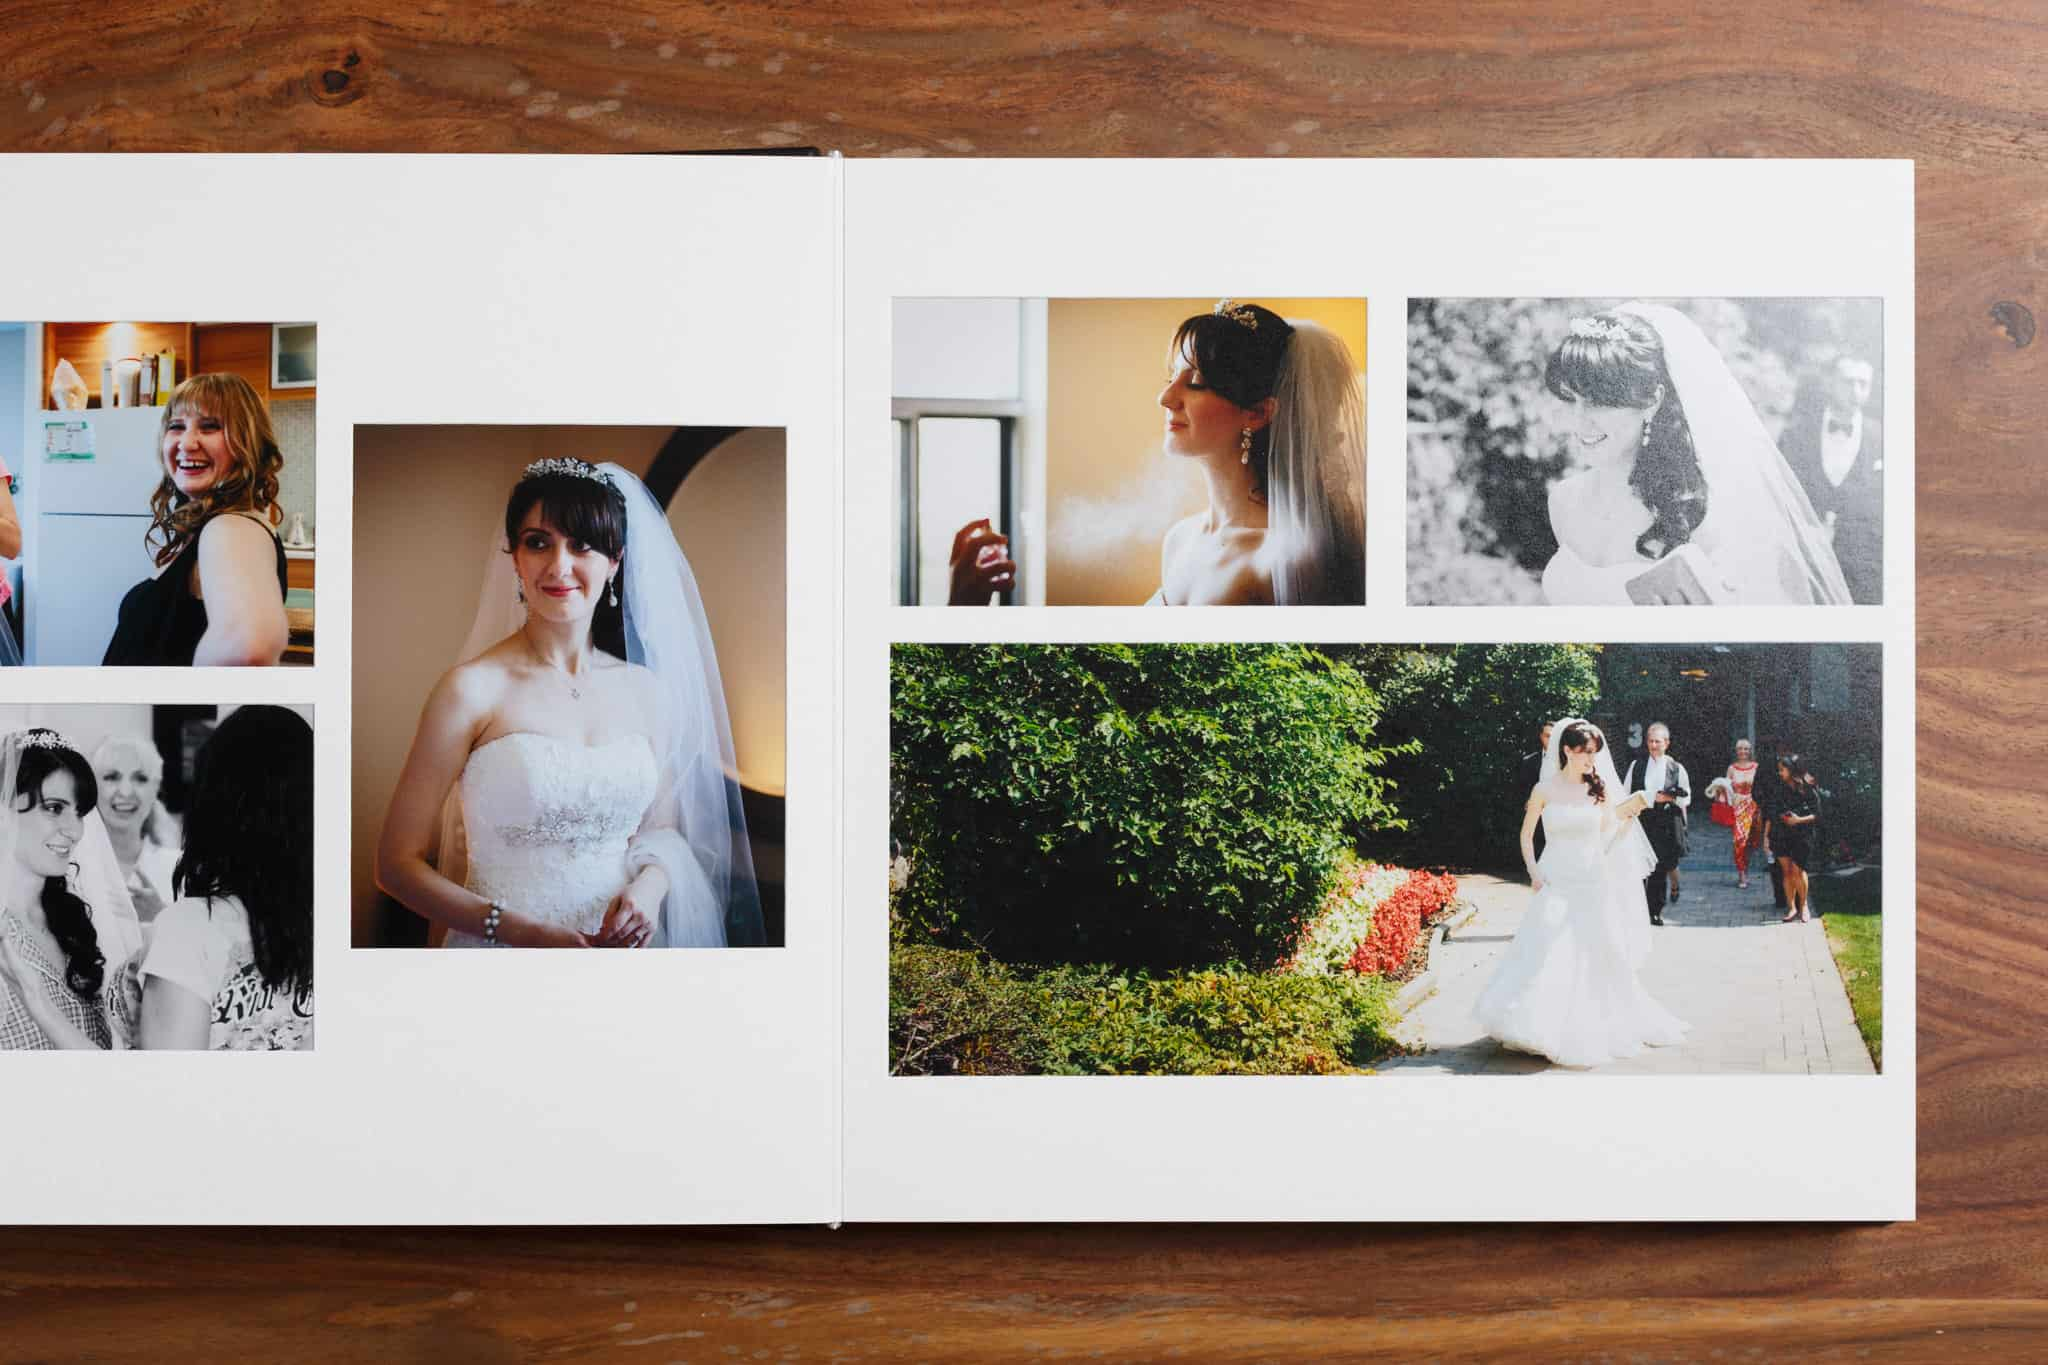 Overlay album type. Wedding photo albums on hardwood background.